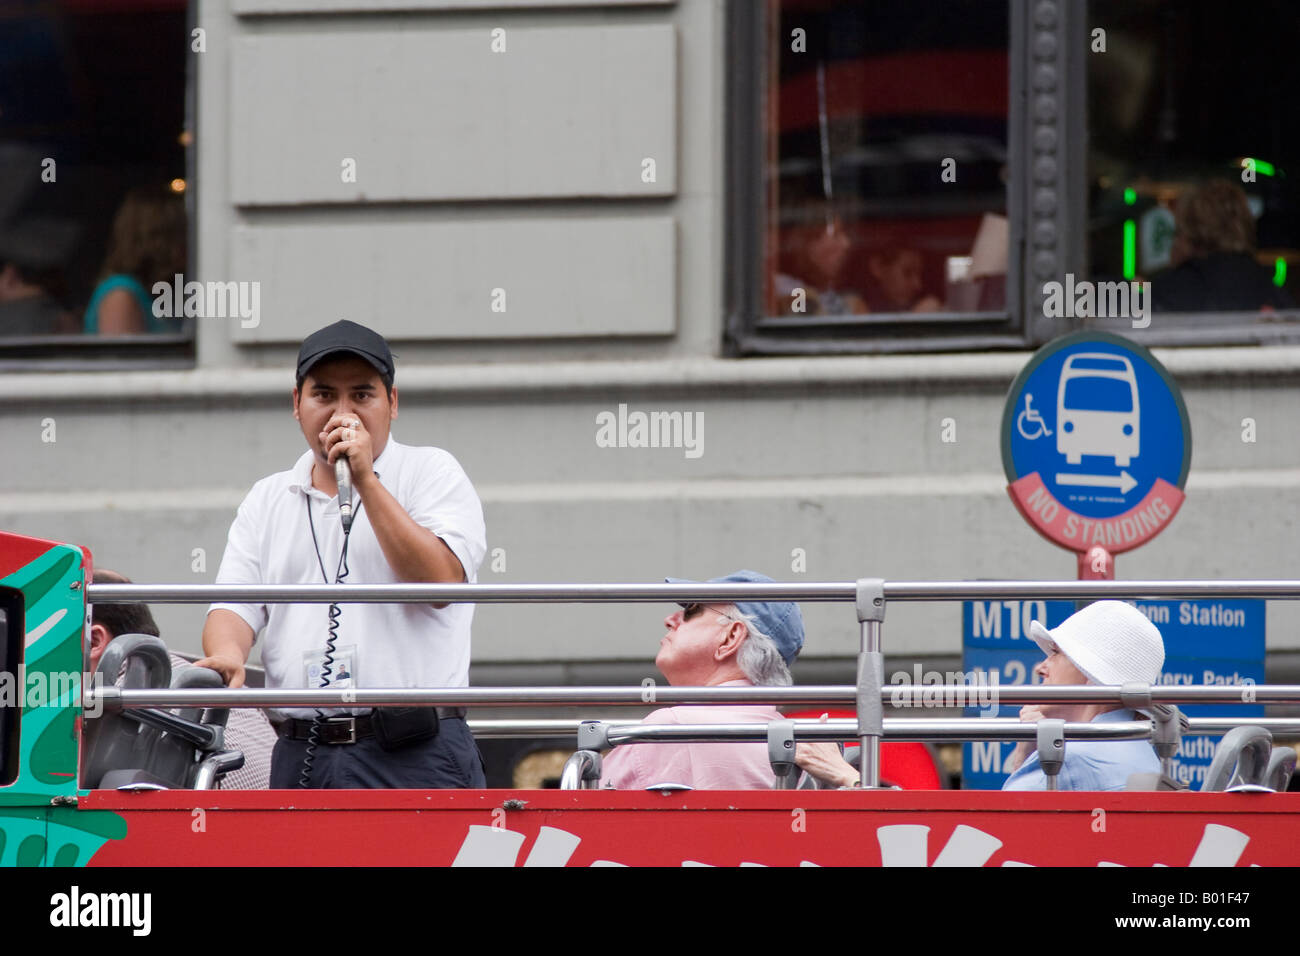 A tour guide on a bus speaks into a microphone in New York City, New York, USA, August, 2006 - Stock Image